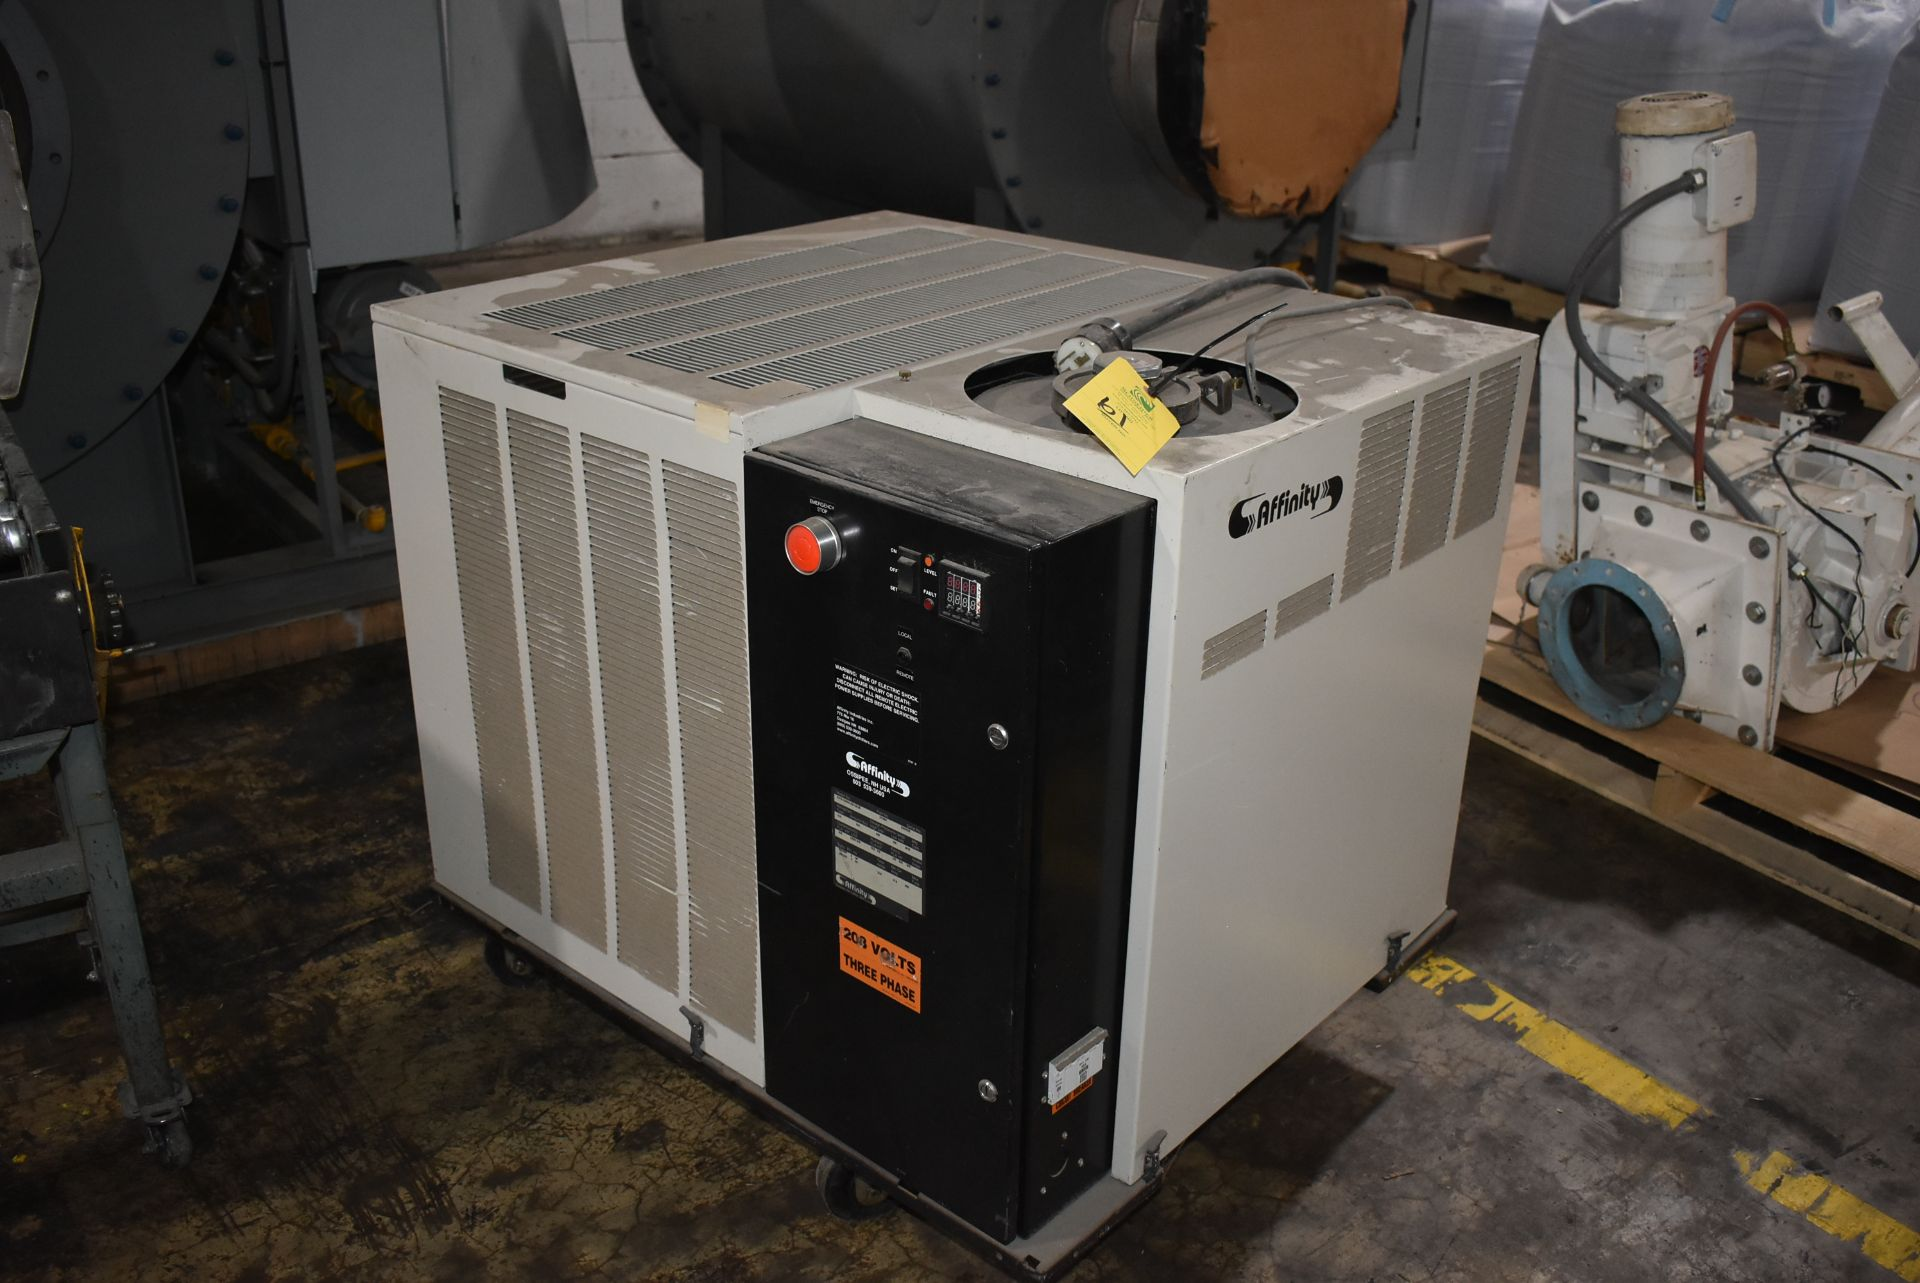 Affinity EWA Series Refrigerated Air Dryer, Part Number 21588, 4-Wheel Base